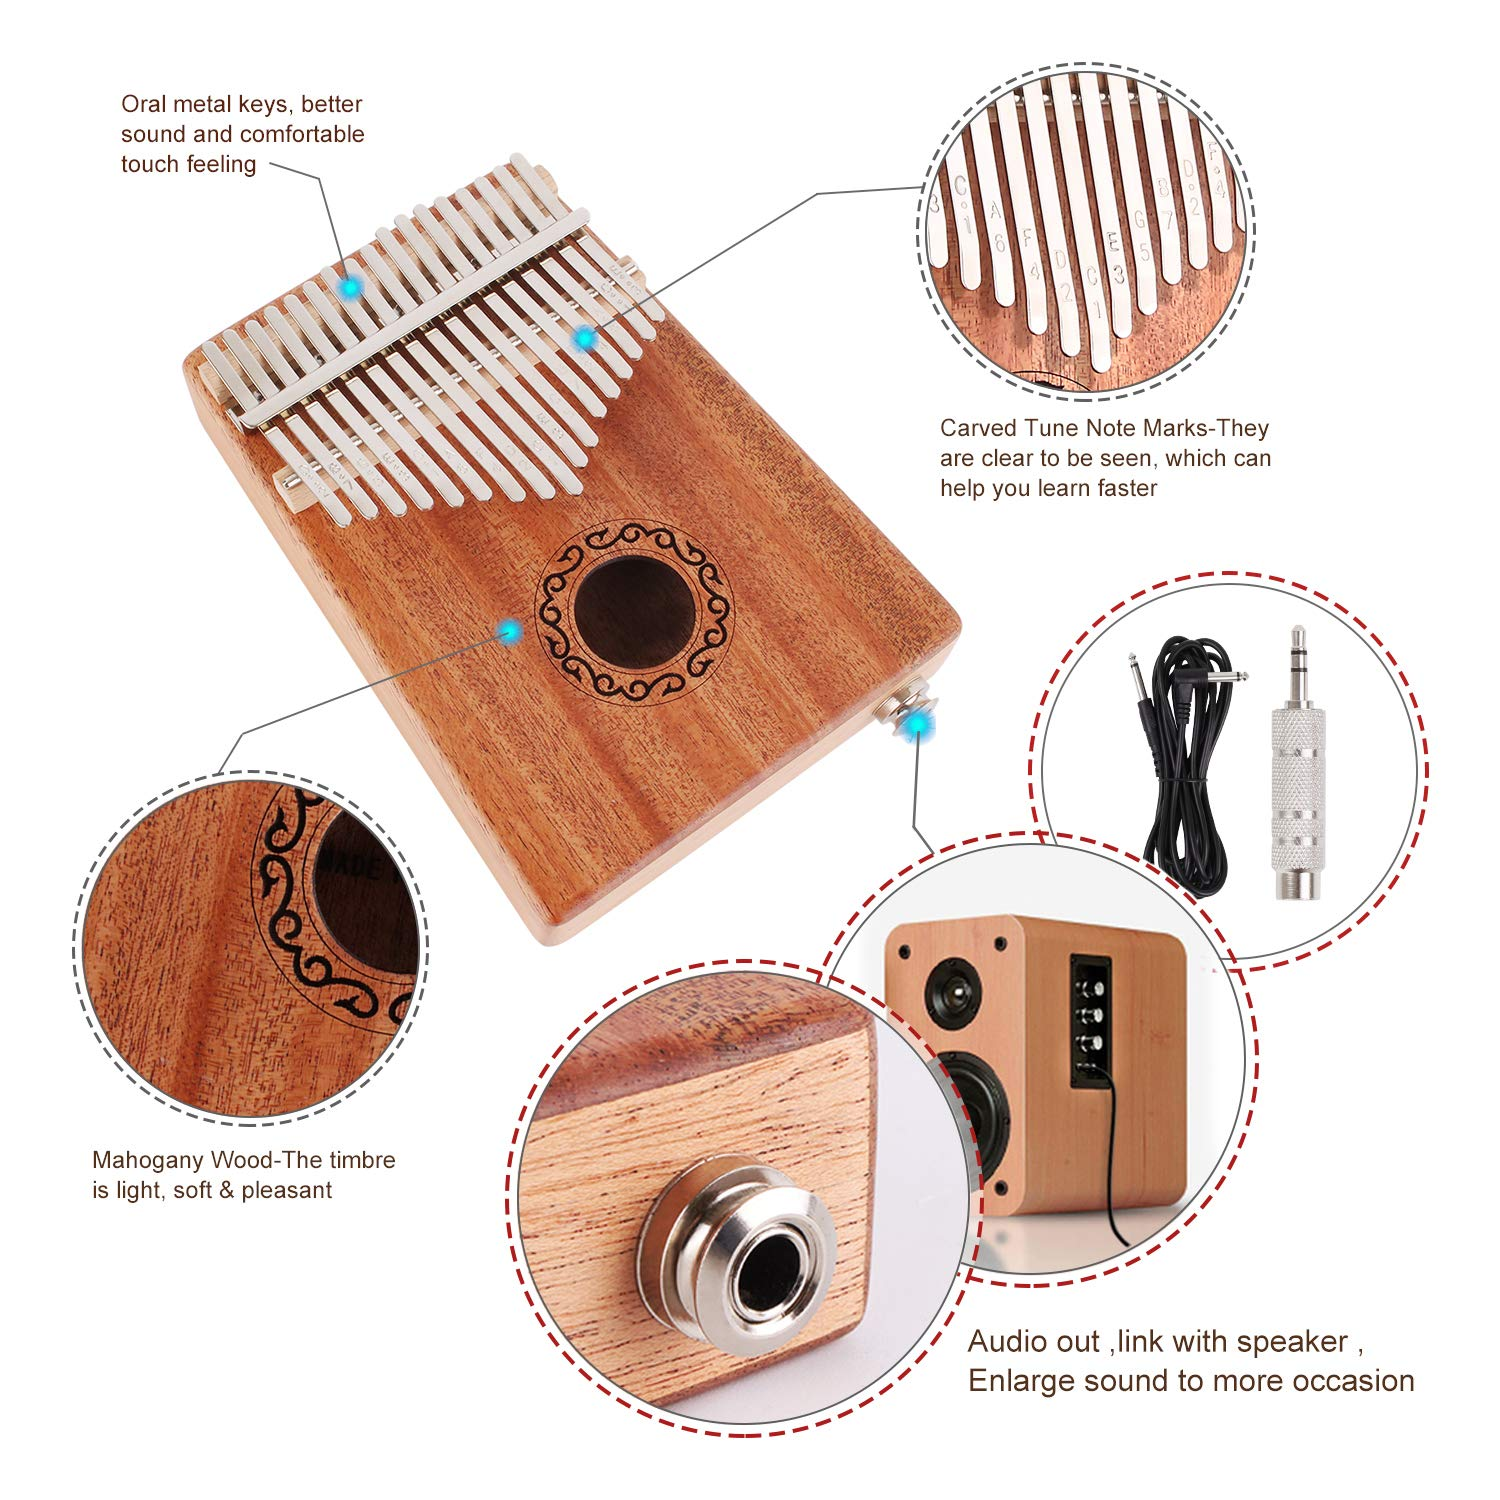 CXhome Electric Kalimba 17 Key Thumb Piano,Mbira African Mahogany Finger Piano Pickup with 6.35mm Audio Interface Sanza Hand Kit, Likembe Musical Instruments for beginners or professioners by CXhome (Image #3)